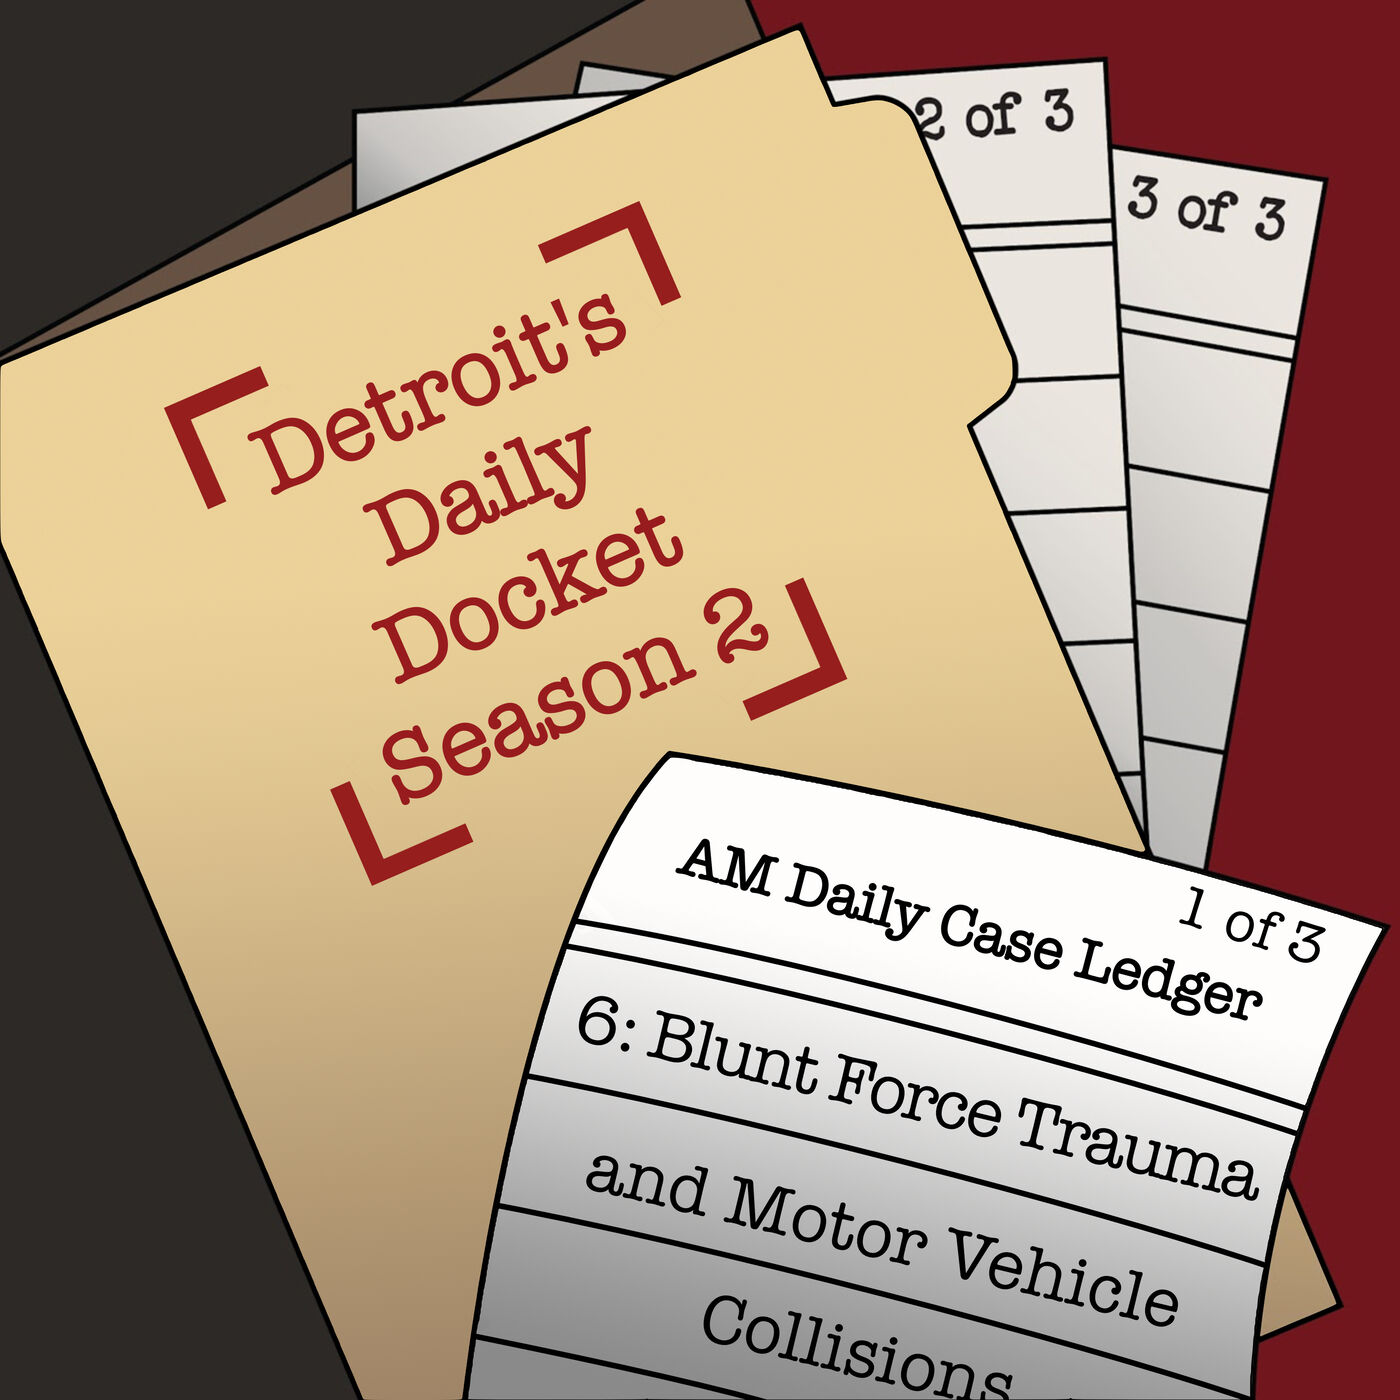 Blunt Force Trauma and Motor Vehicle Collisions